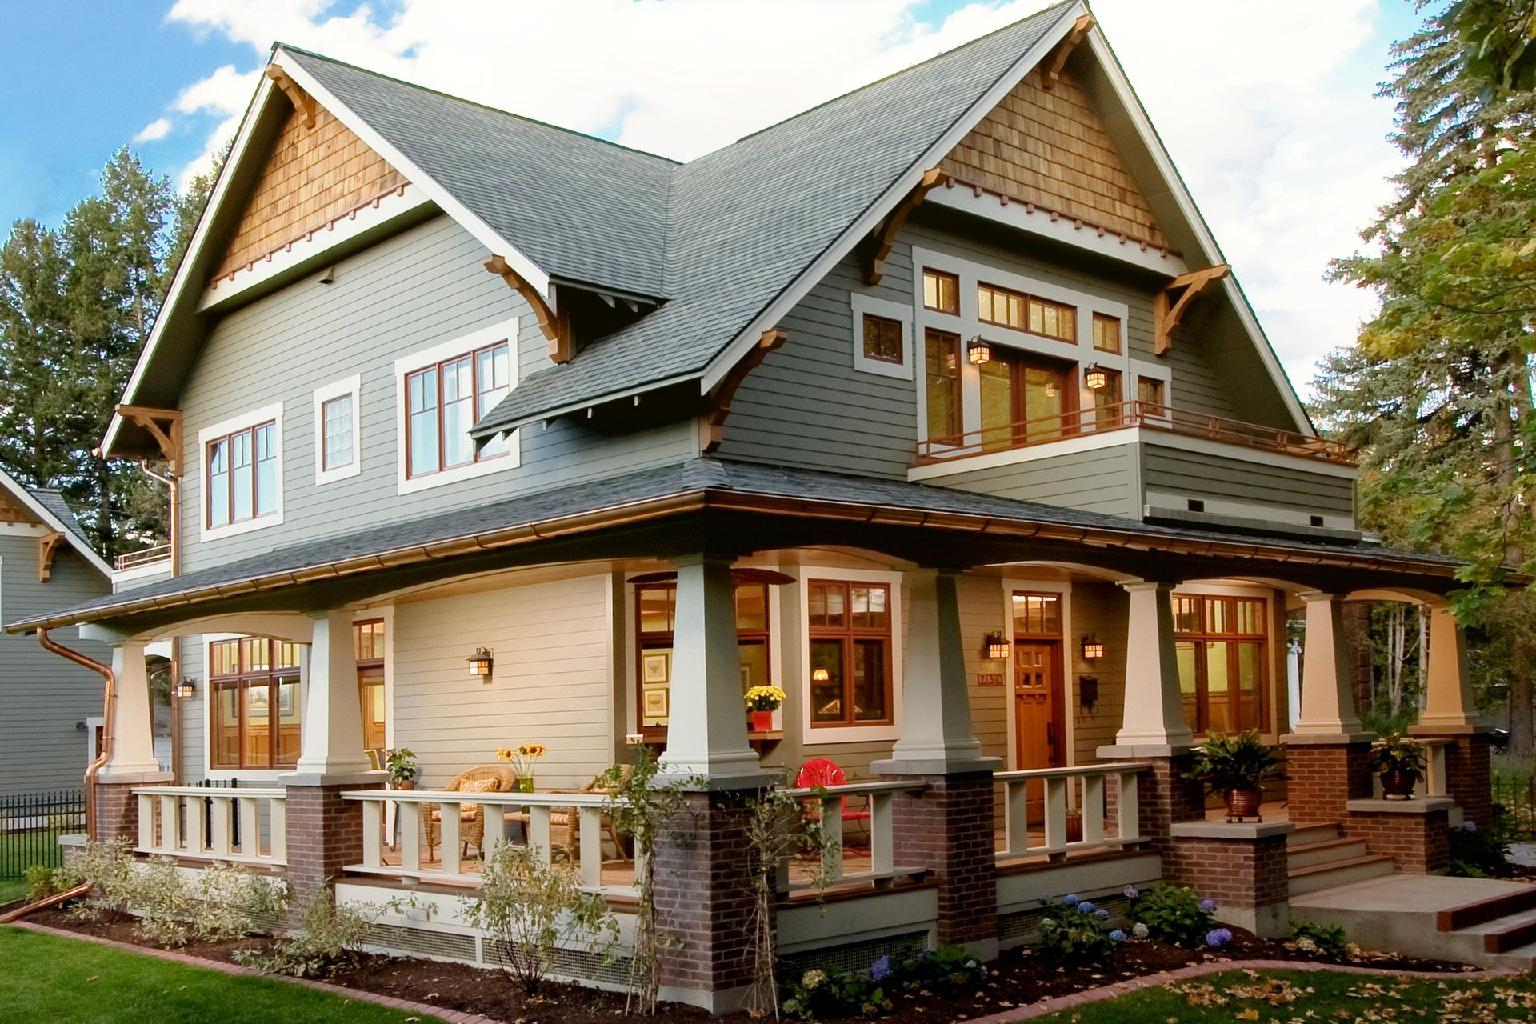 craftsman style house history characteristics and ideas On craftsman style house